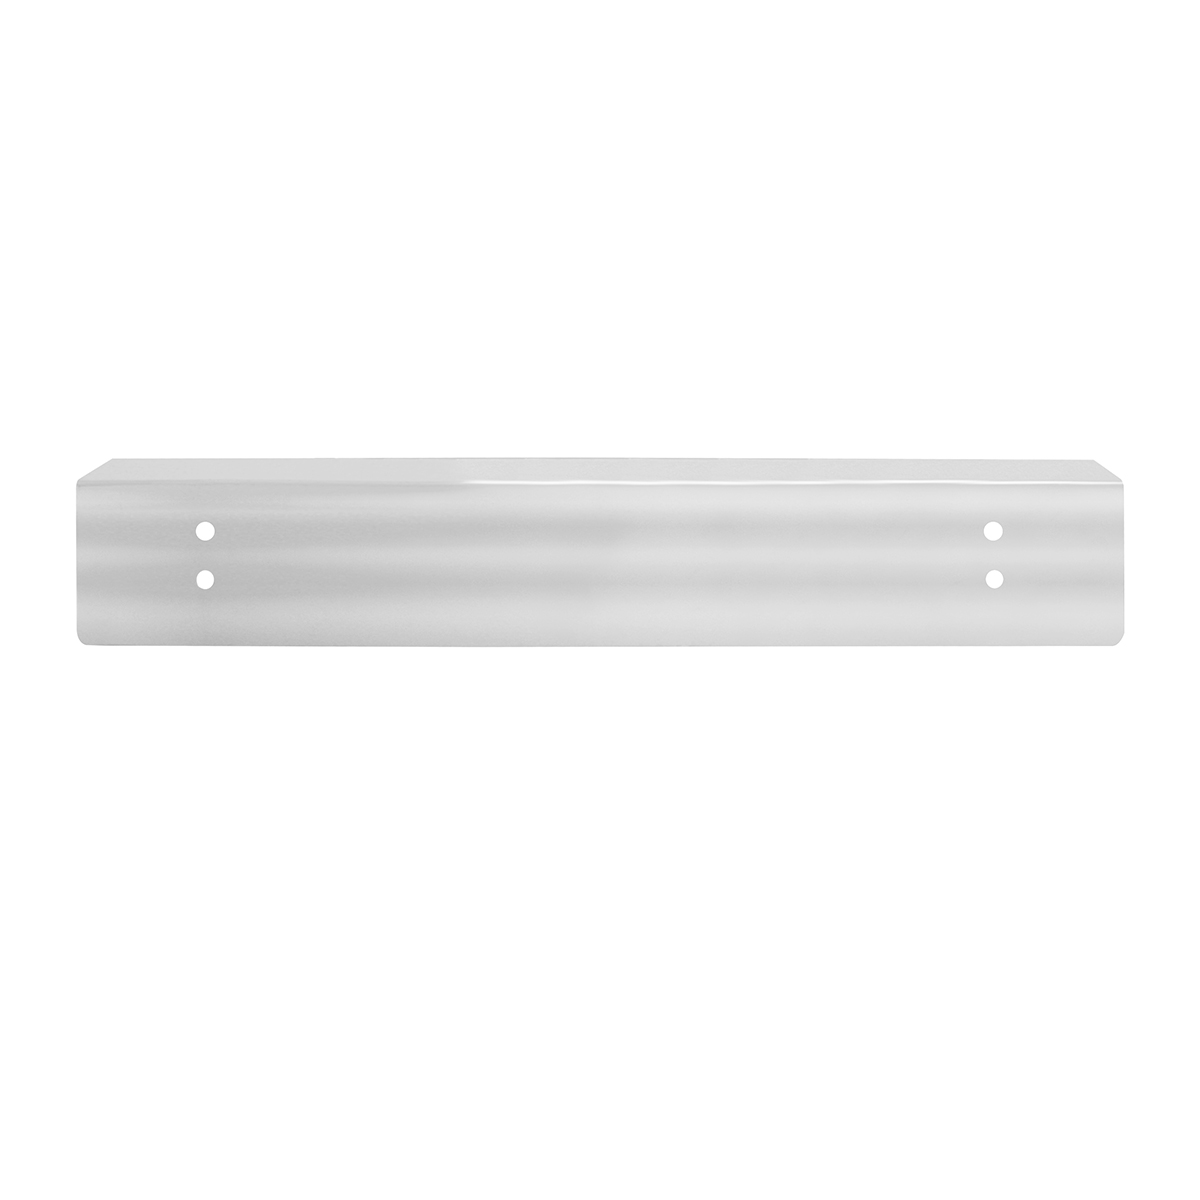 93941 Pete Stainless Steel Rear Frame Cover